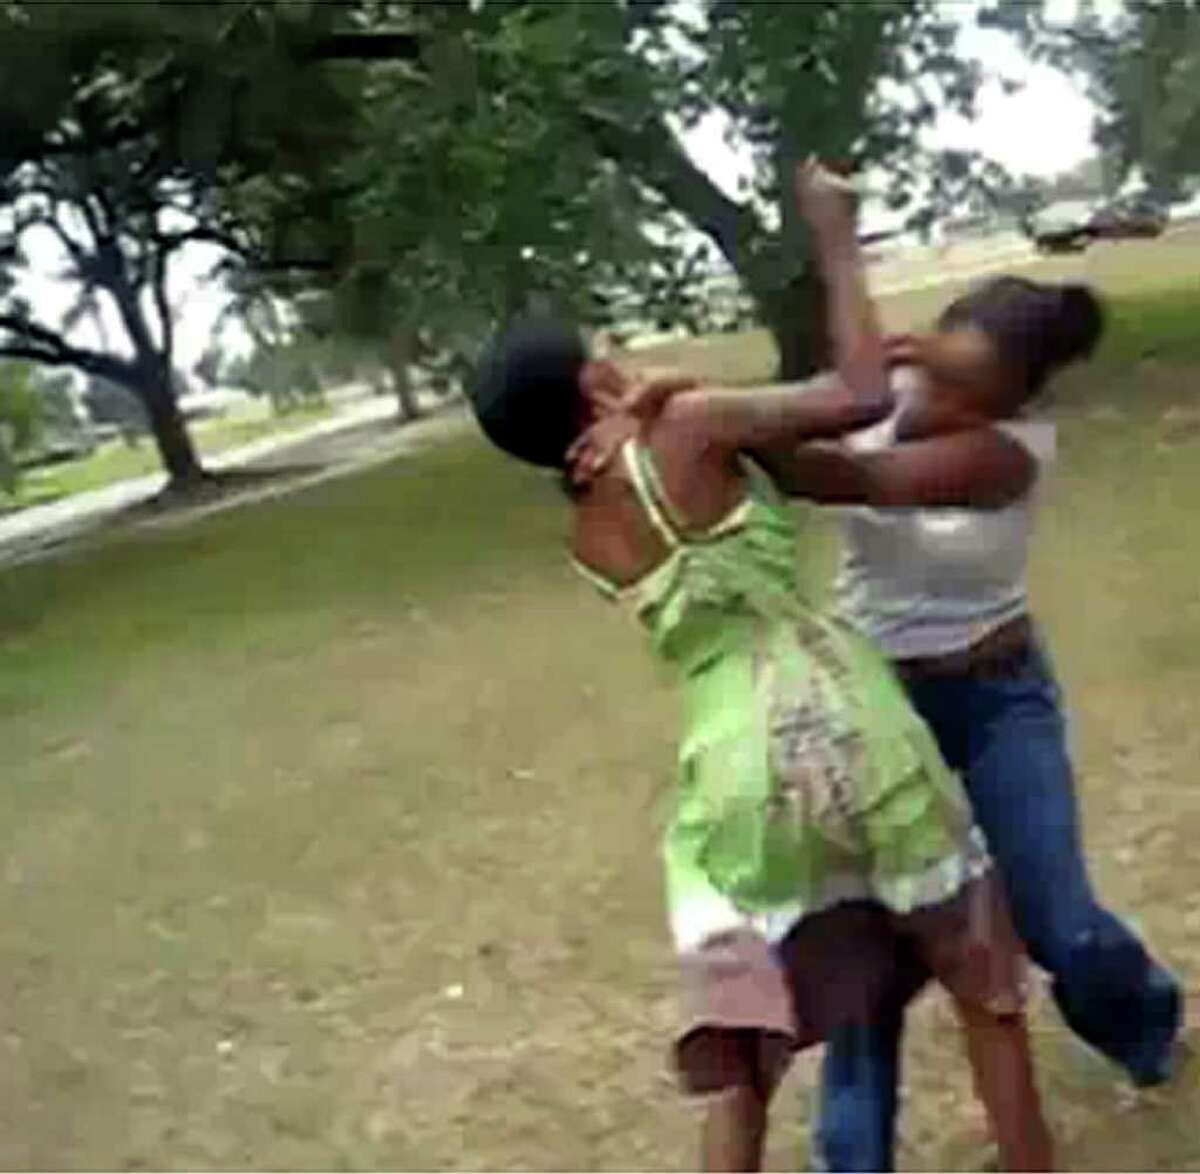 Still taken from YouTube video showing two women fighting in Beaumont.